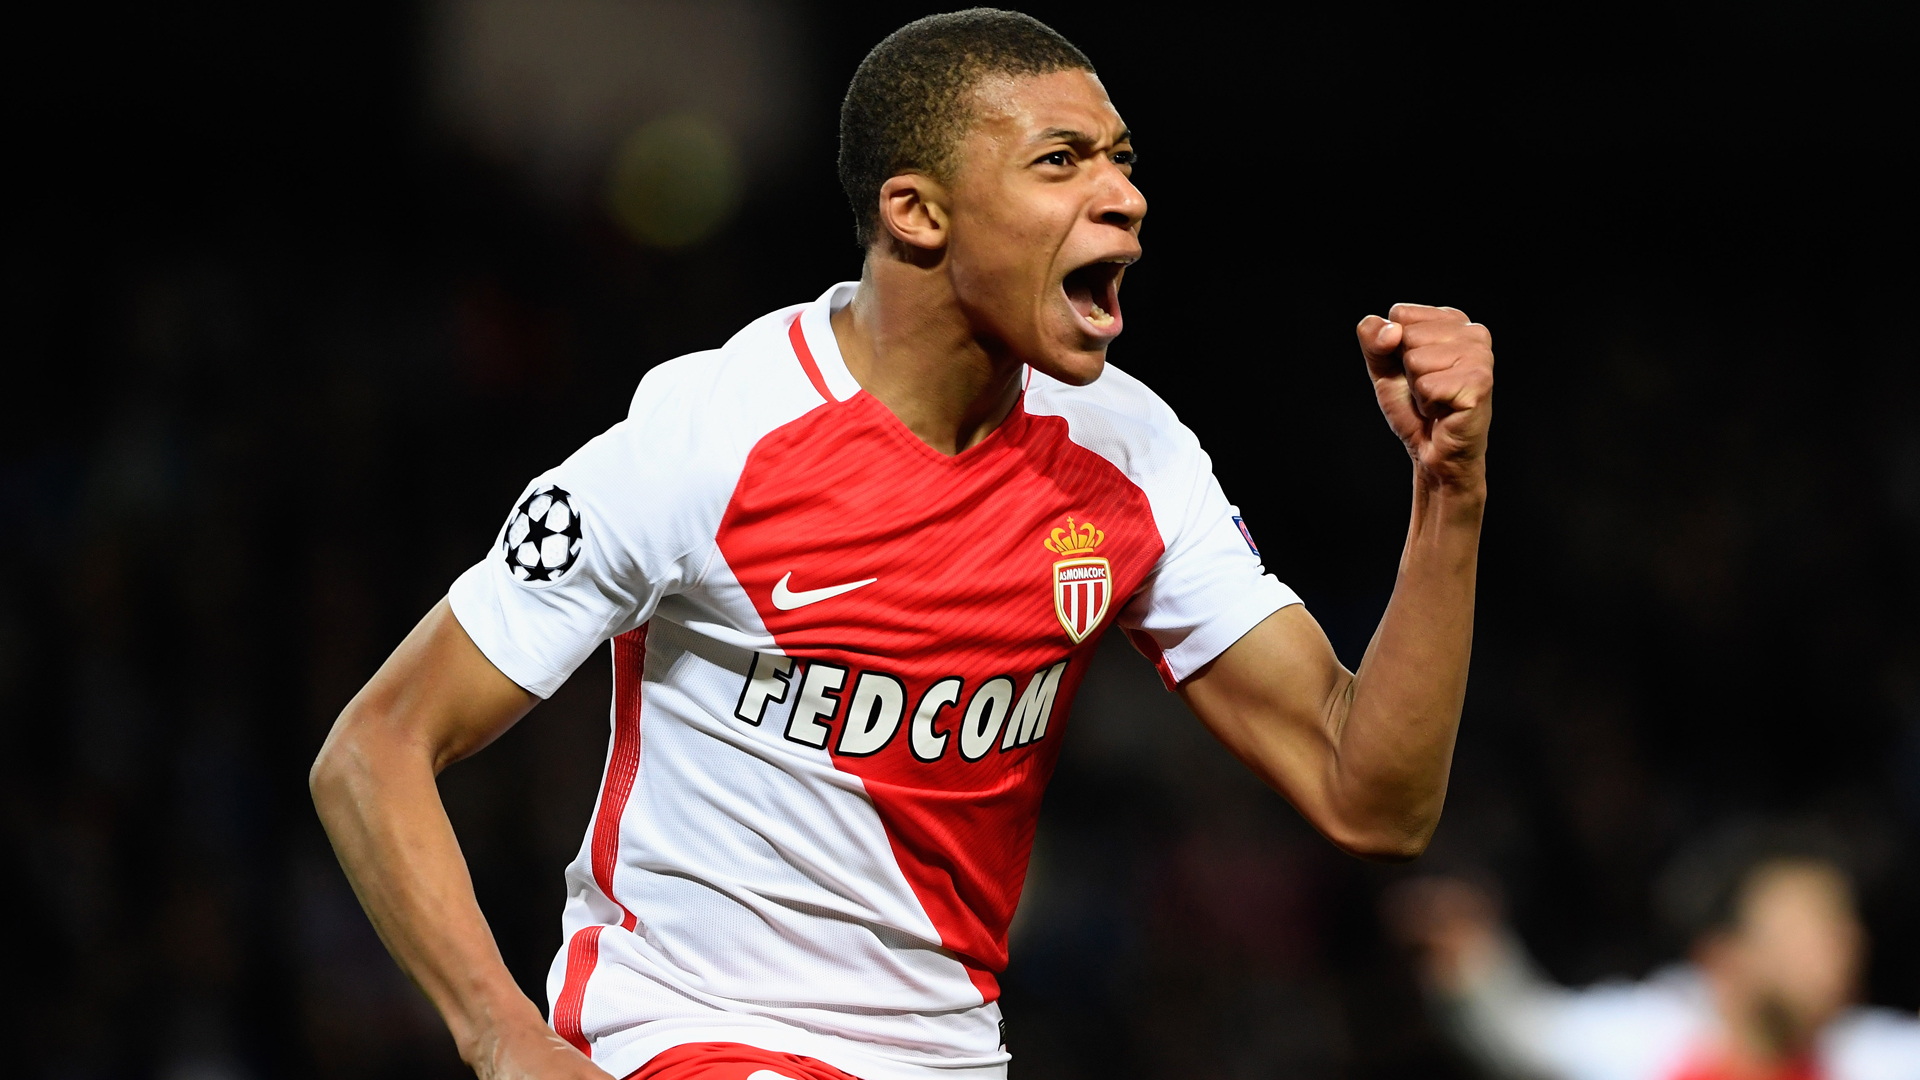 £64m Kylian Mbappe bid made as Man United and Real Madrid circle